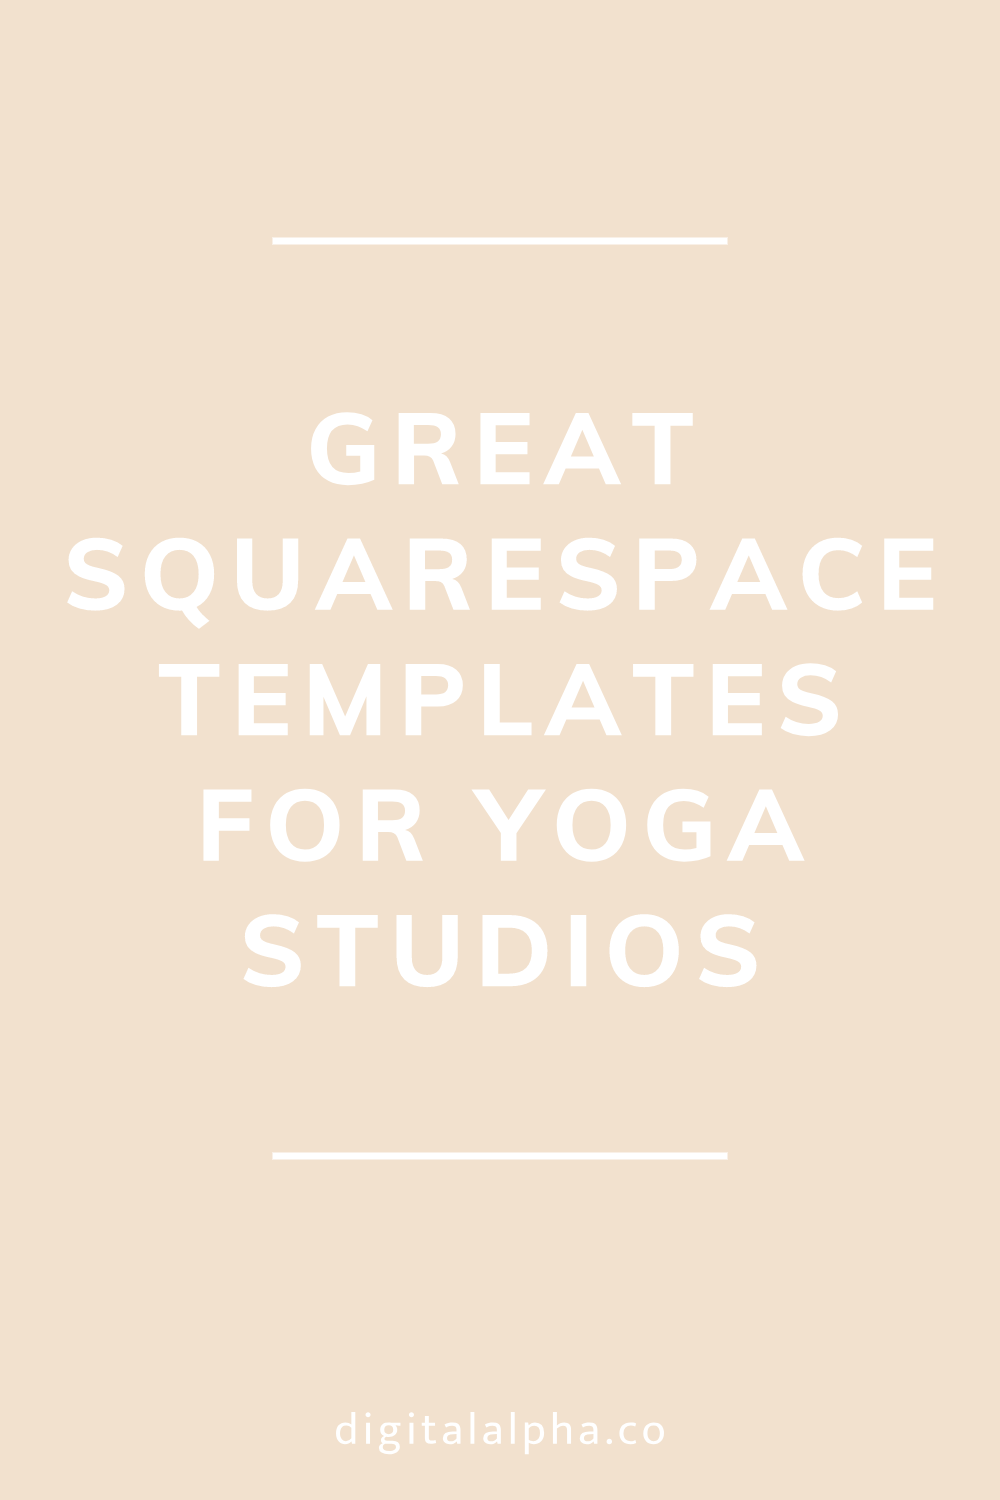 Great Squarespace Templates for Yoga Studios Digital Alpha - Squarespace Designer.png